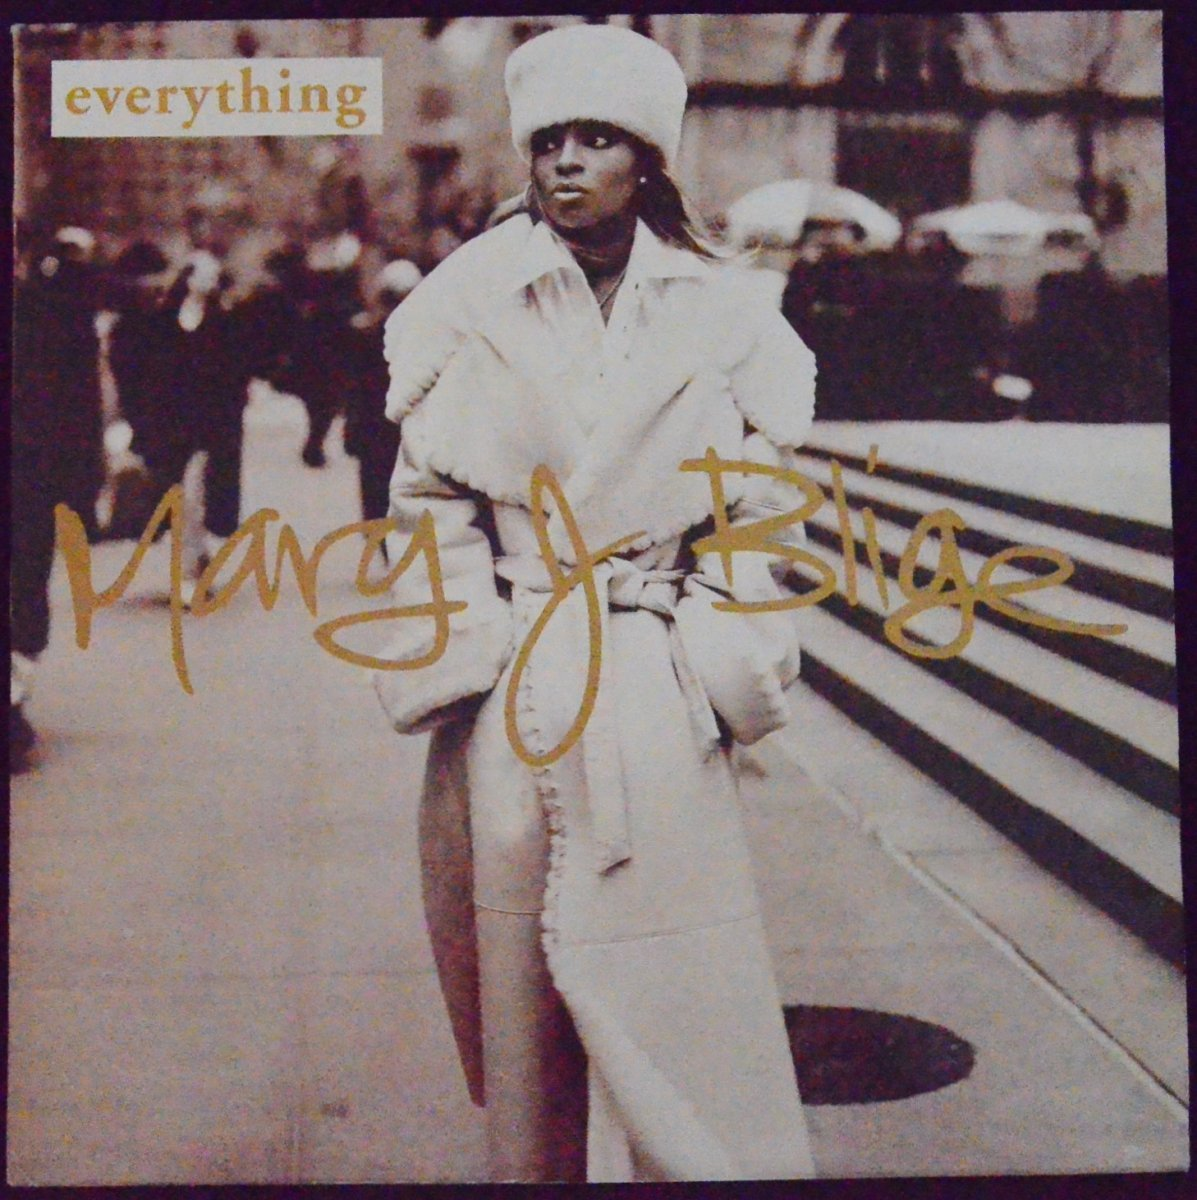 MARY J. BLIGE ‎/ EVERYTHING (12